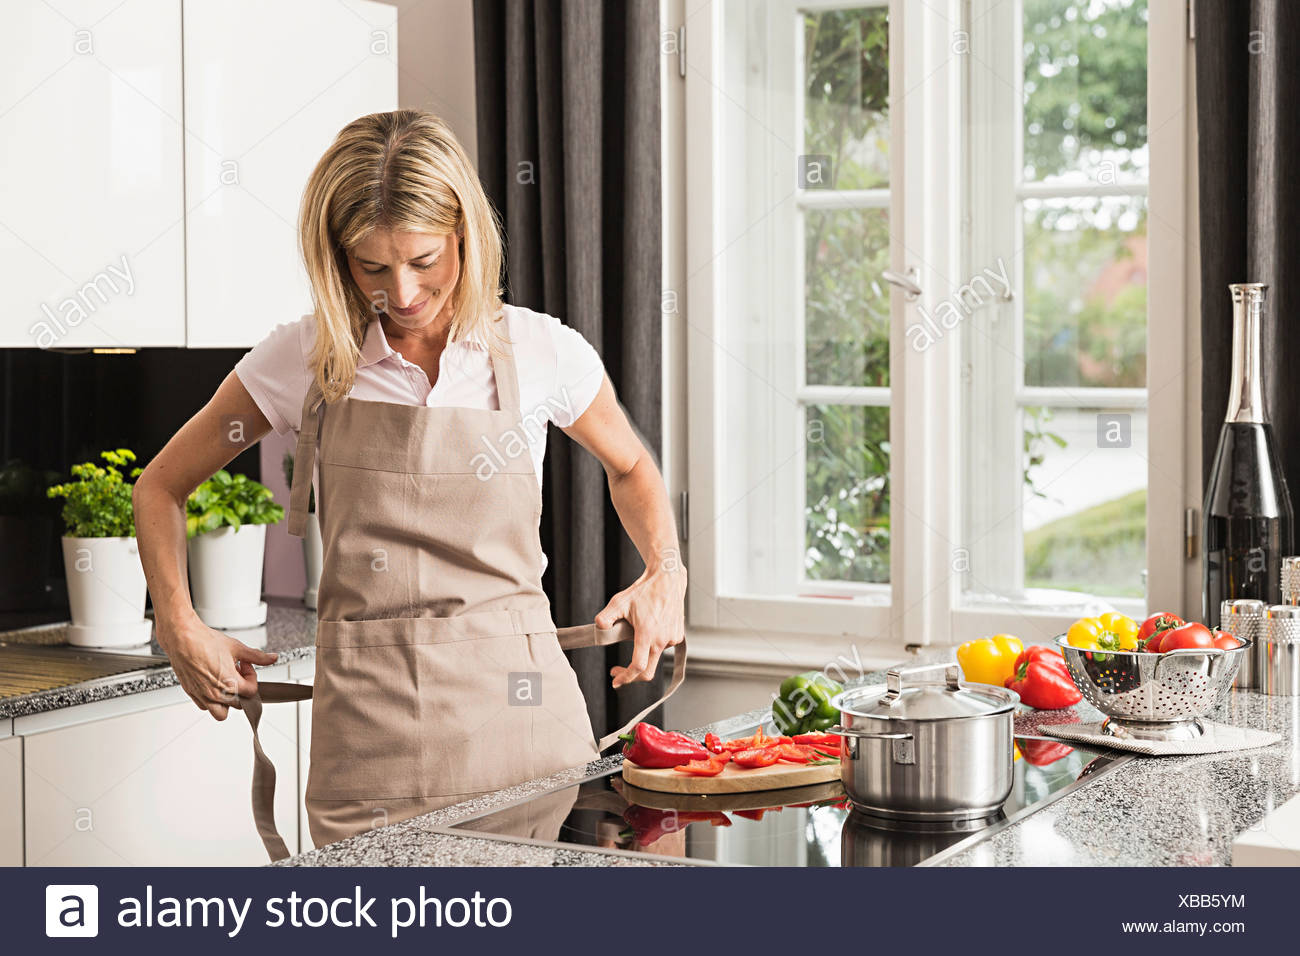 Mid adult woman tying apron in kitchen - Stock Image